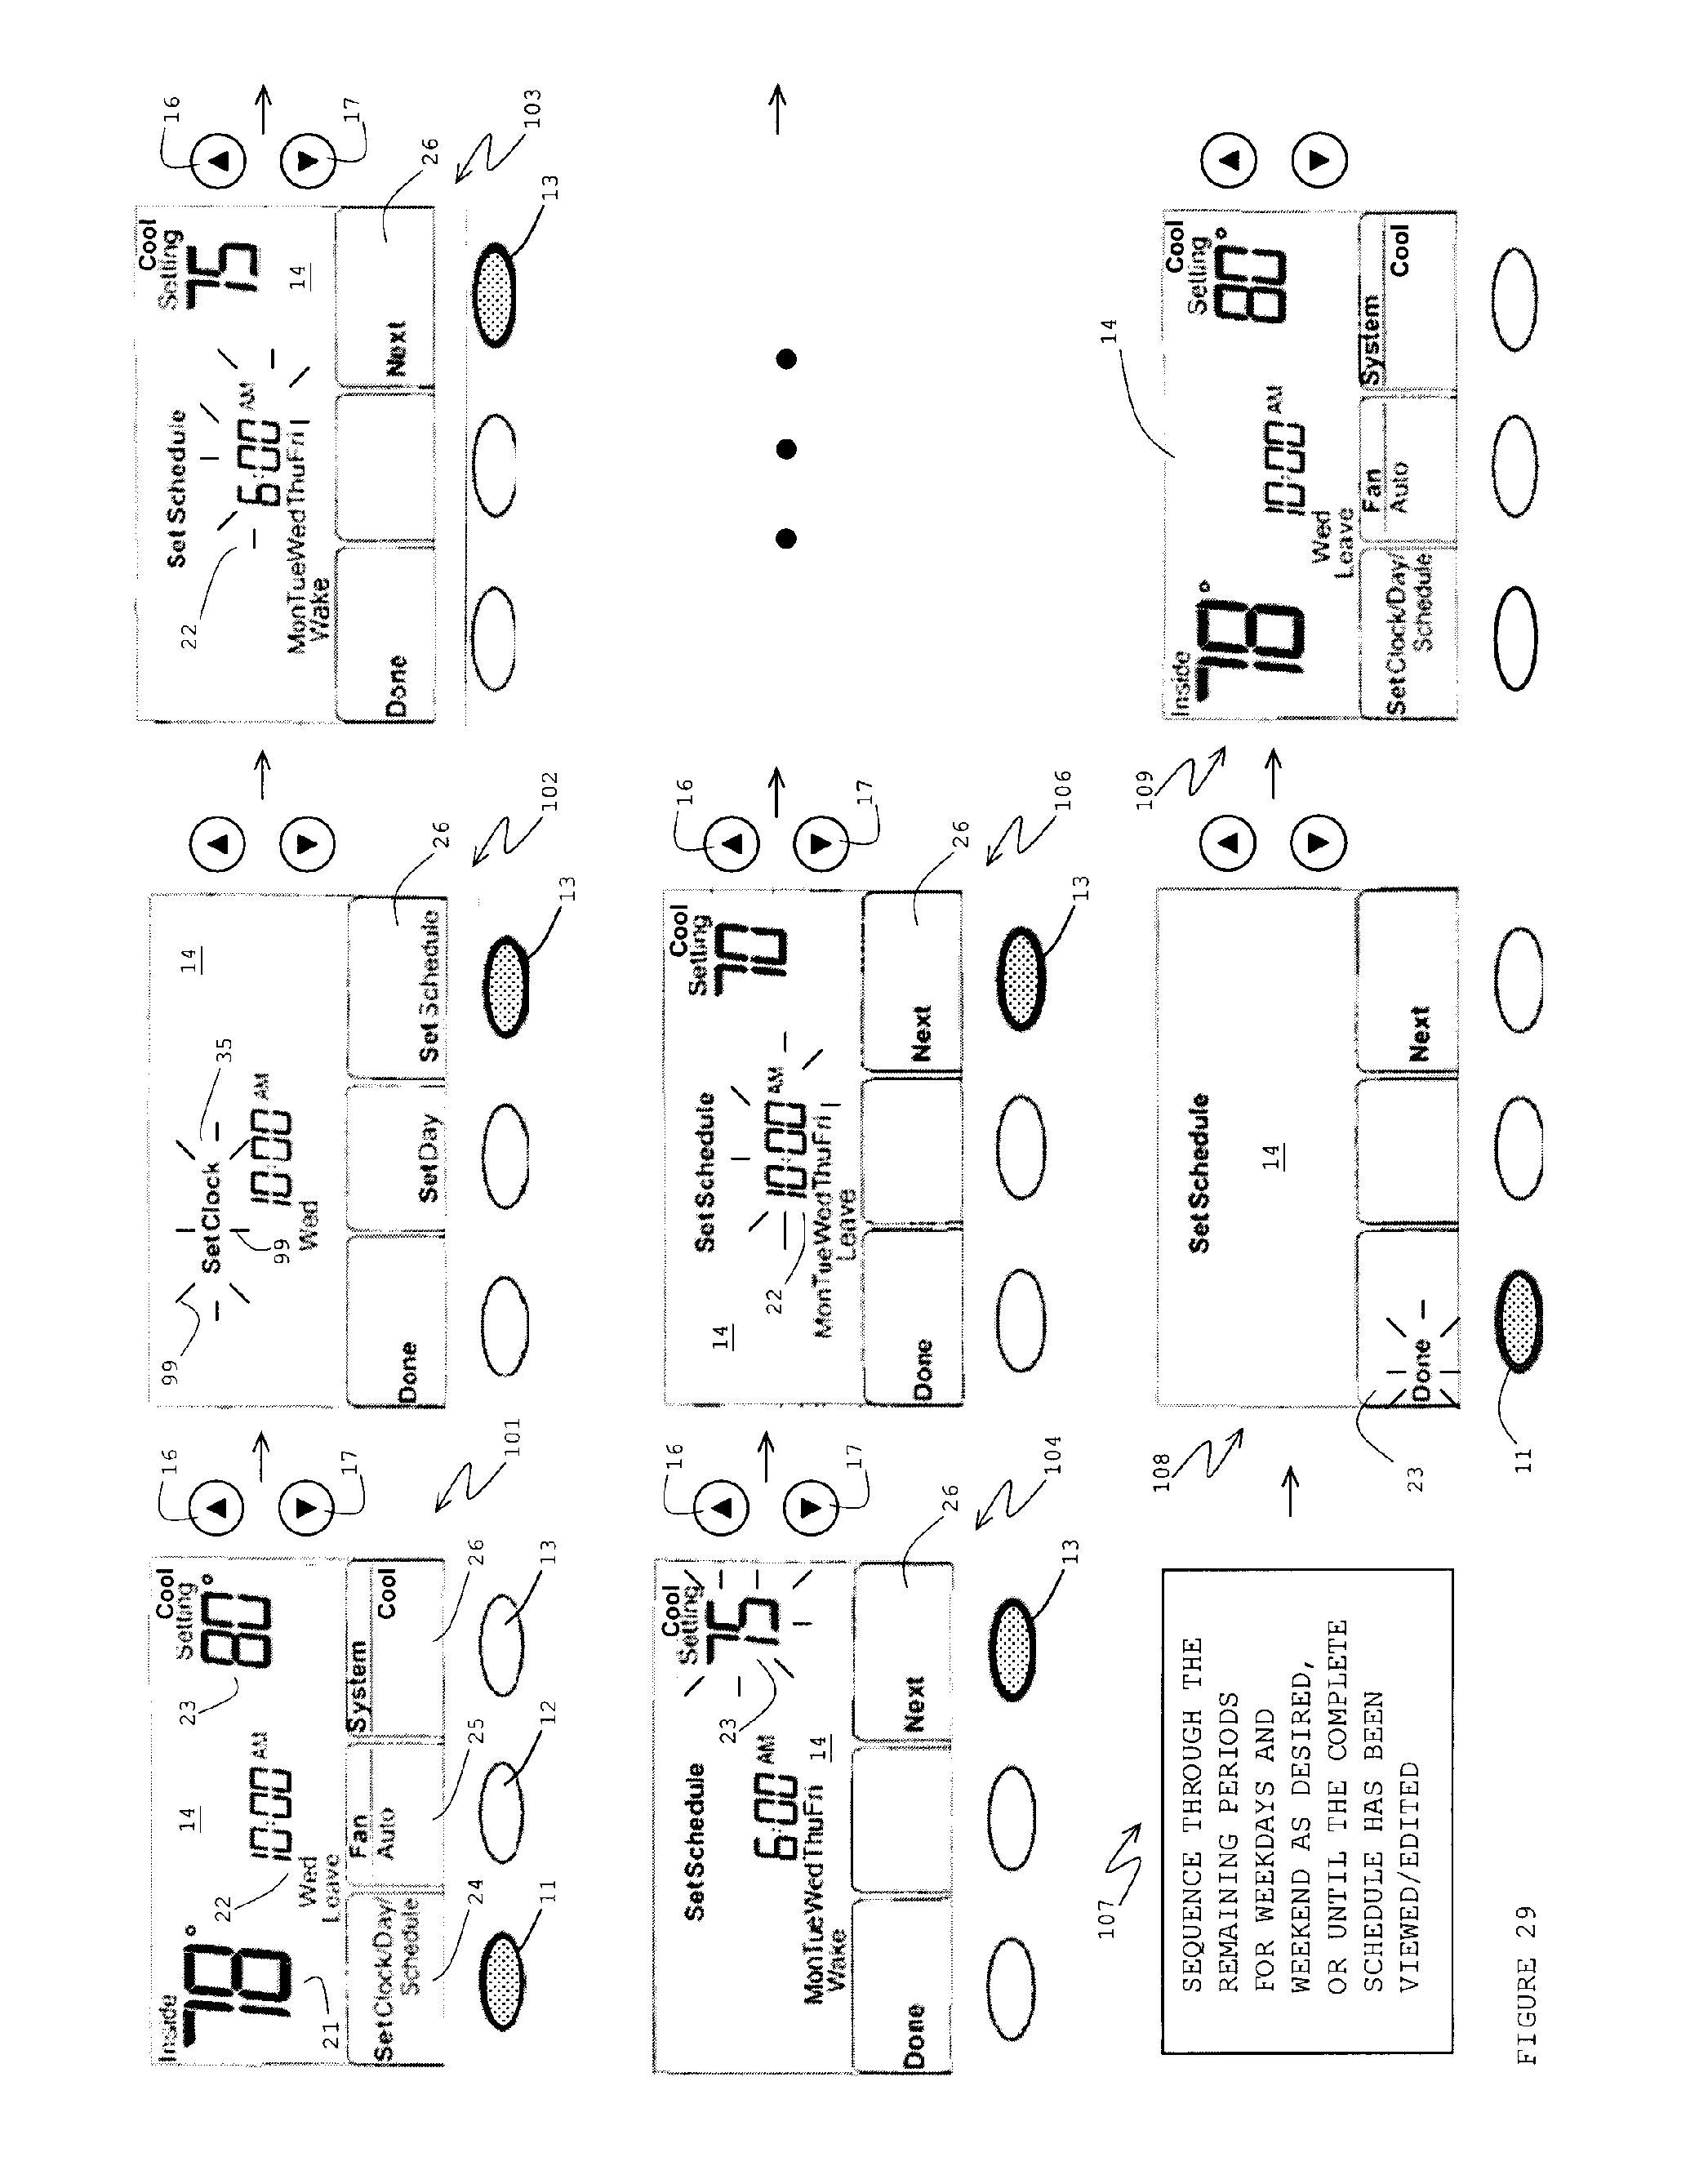 T Stat Wiring Diagram additionally US7584897 likewise 03 Chevy Malibu Wiring Diagram together with Honeywell Humidistat Wiring Diagram also Auto Ac Diagram. on honeywell chronotherm iv plus wiring diagram